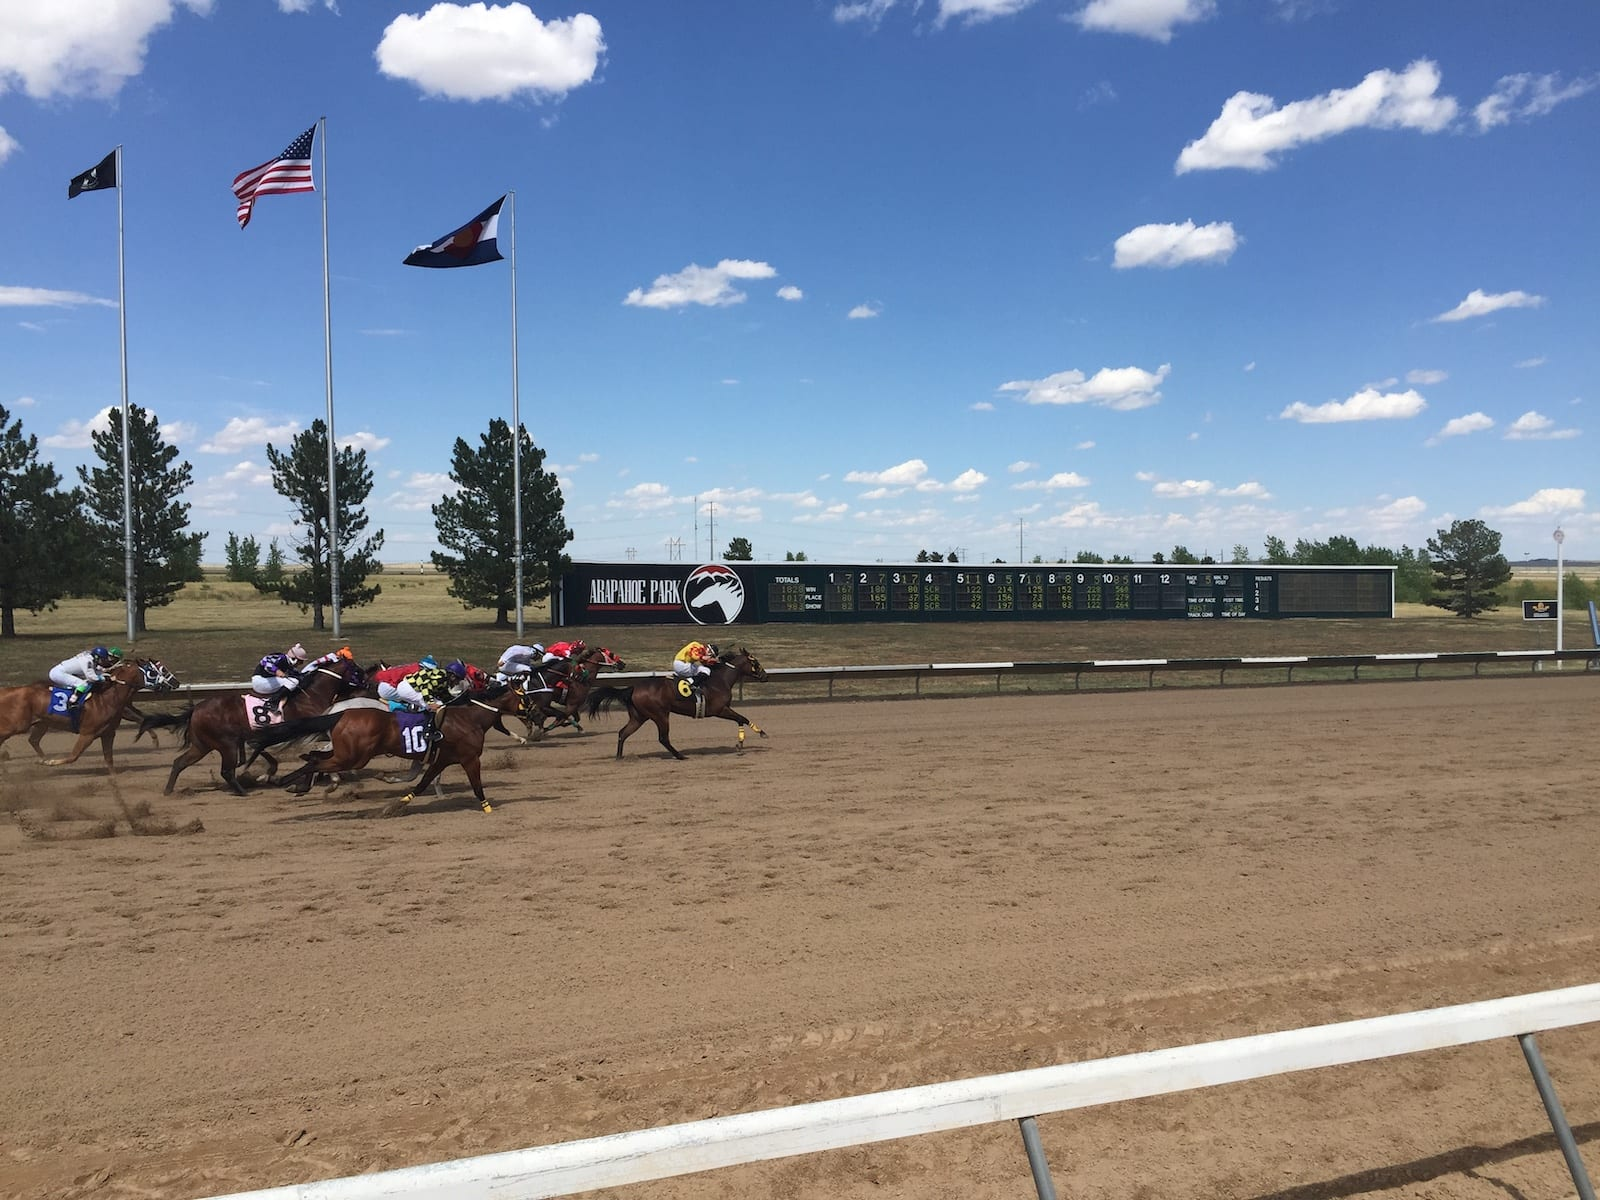 Horse Racing Arapahoe Park Racetrack Aurora CO